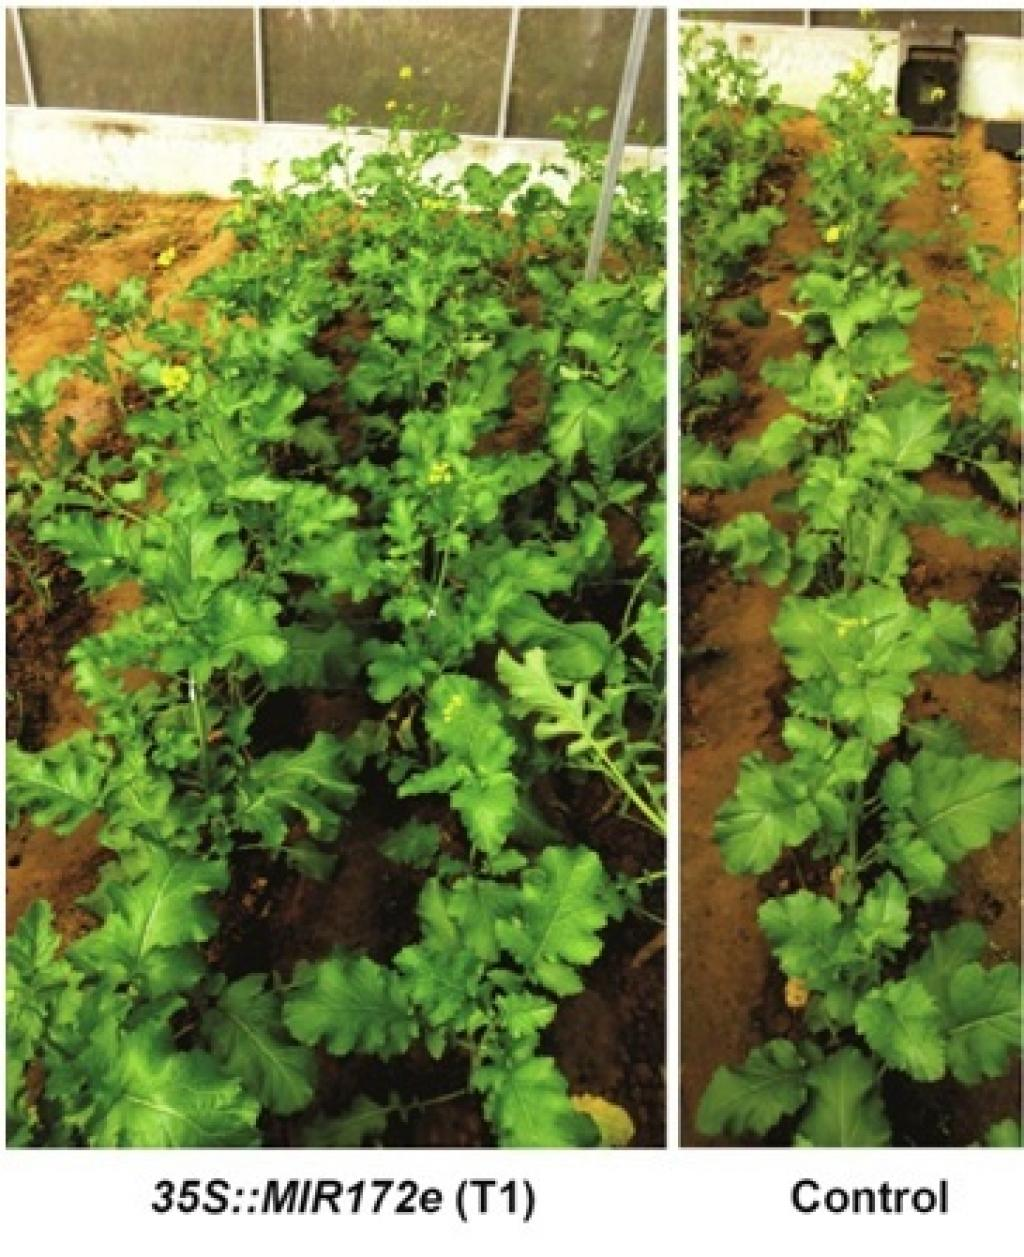 By increasing the expression of this microRNA, the researchers have developed an early flowering transgenic plant of Indian mustard cultivar Brassica junceacv.